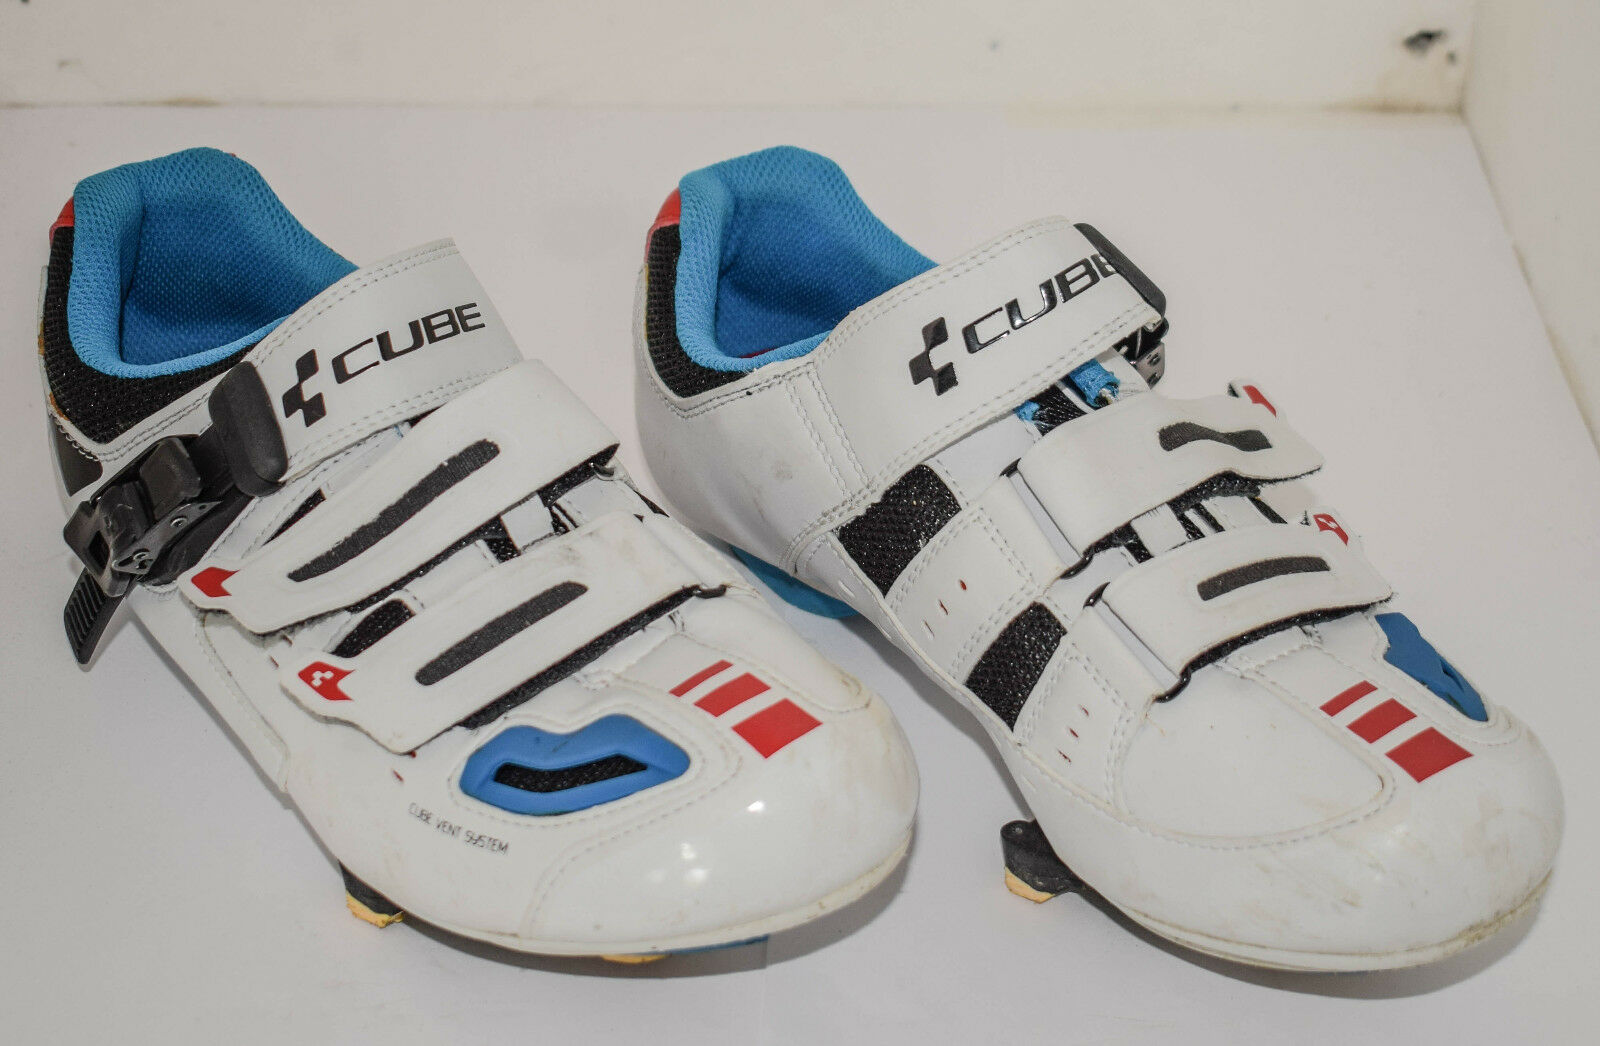 shoes Road Bike Cube Road pro Size 39 Teamline Cycling shoes Road Bike Used